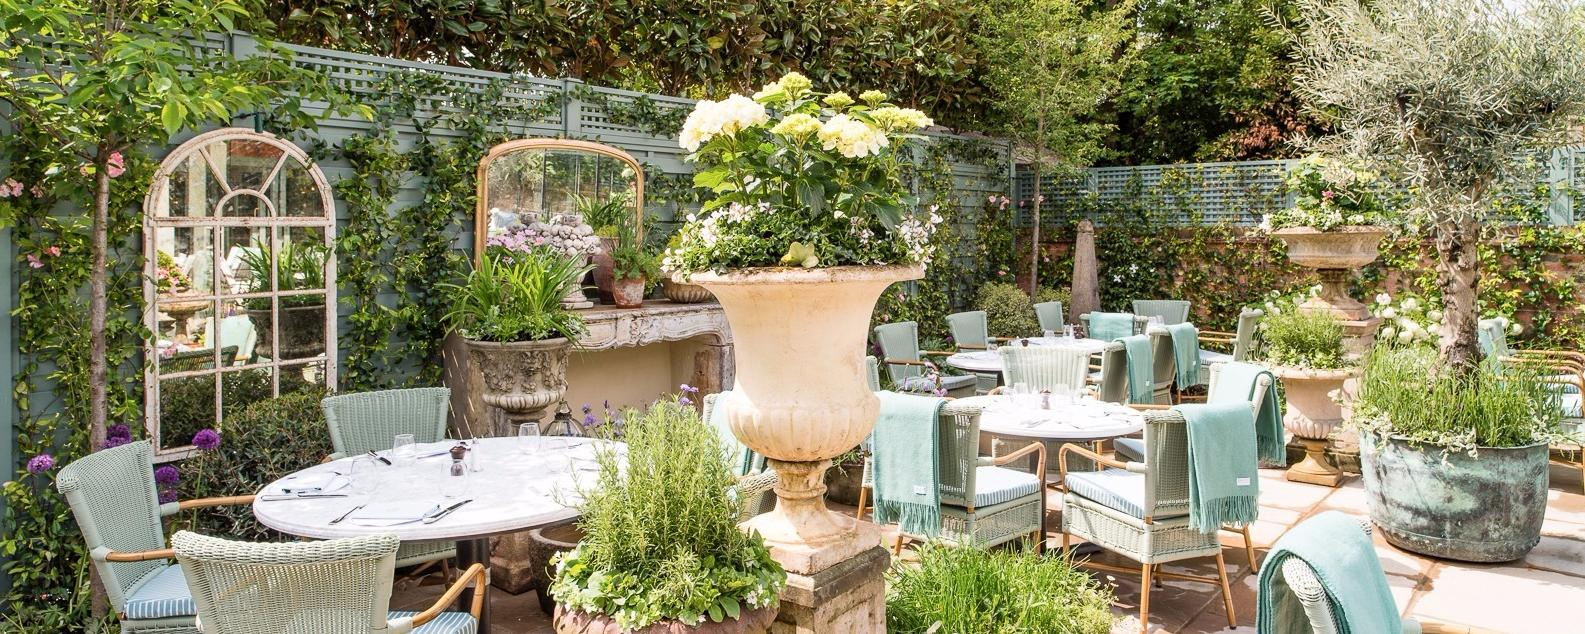 The Ivy Marlow Garden Brand Cover